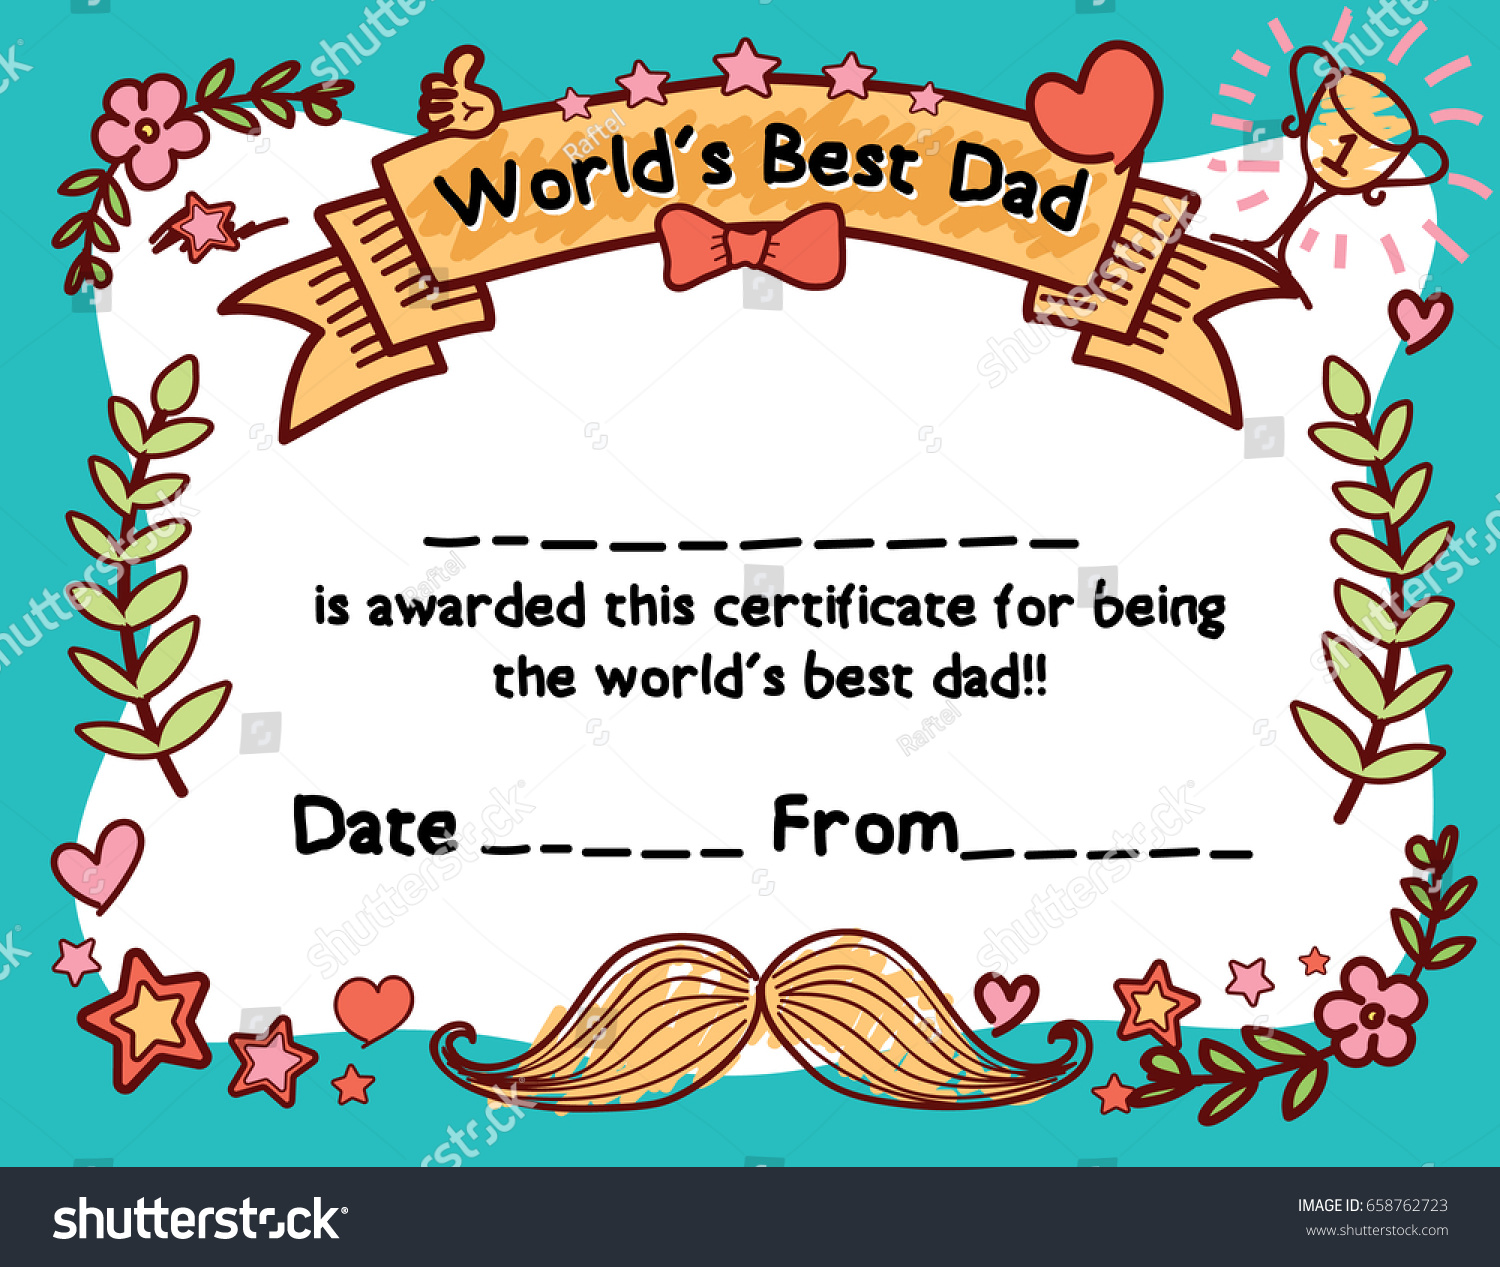 Worlds best dad award certificate template stock vector 658762723 worlds best dad award certificate template for fathers day alramifo Images